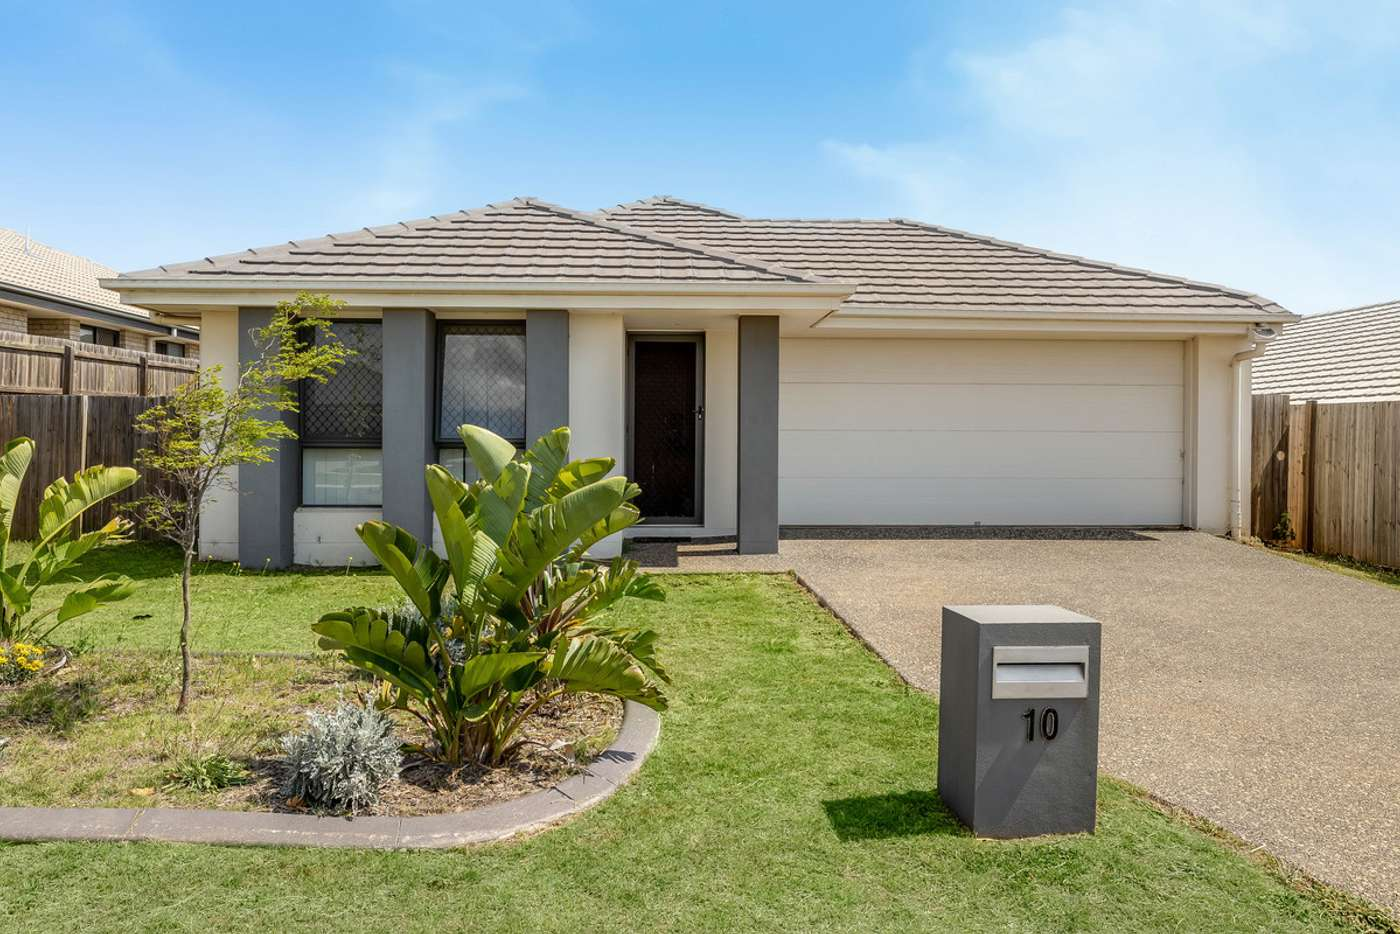 Main view of Homely house listing, 10 Serengetti Street, Harristown QLD 4350